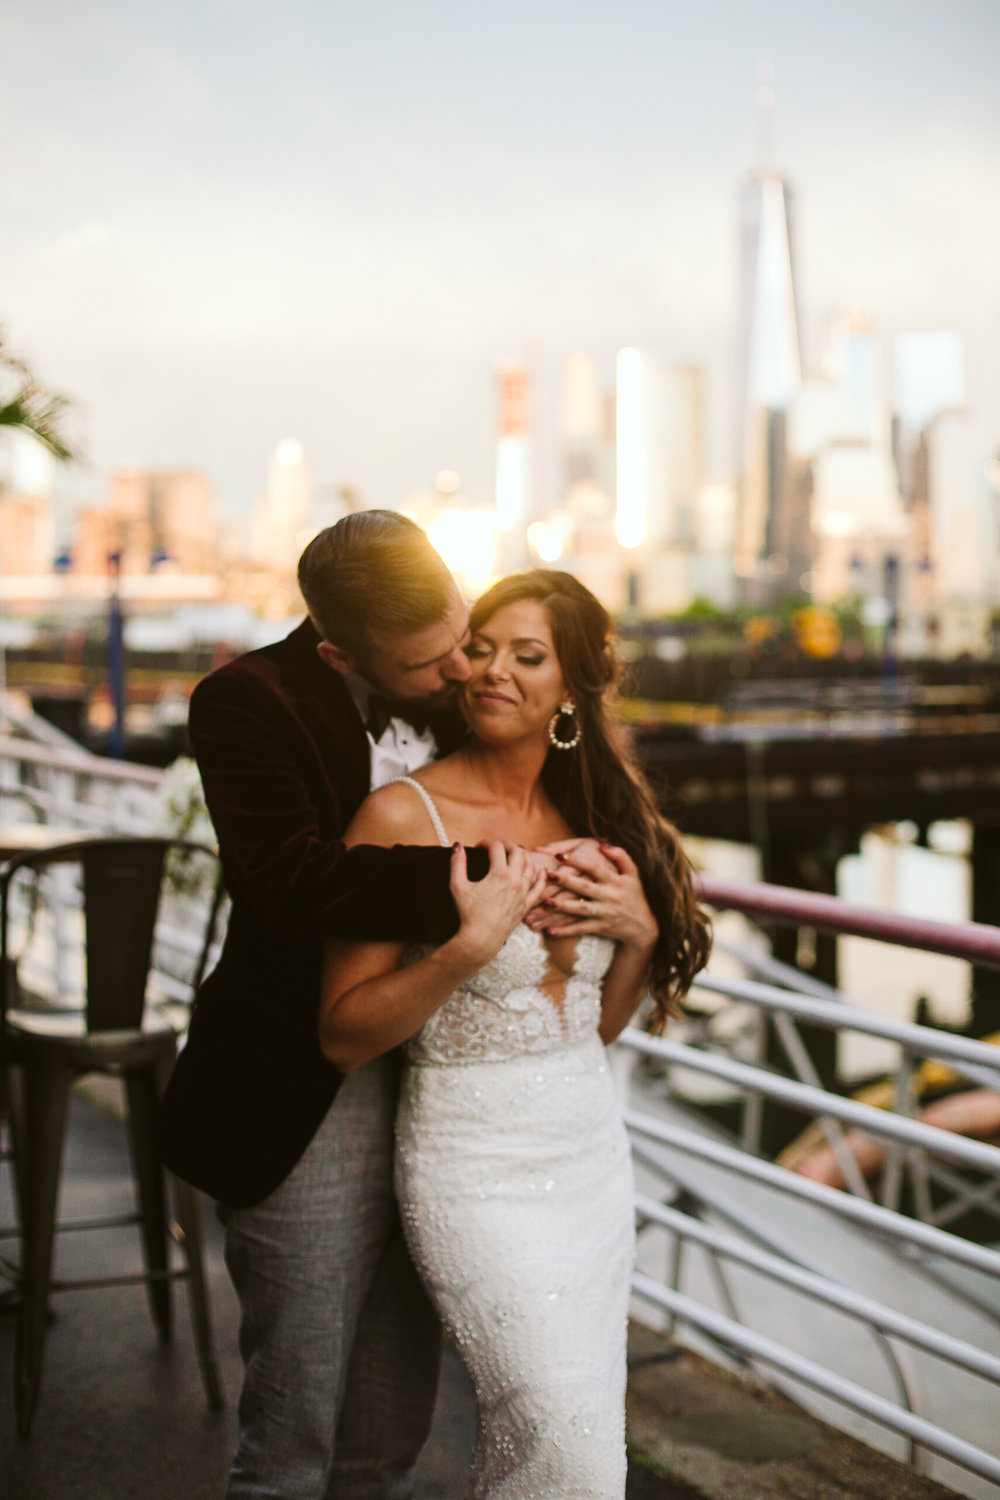 A portrait of the bride and groom with the NYC skyline at sunset at this Battello Wedding in Jersey City, NJ